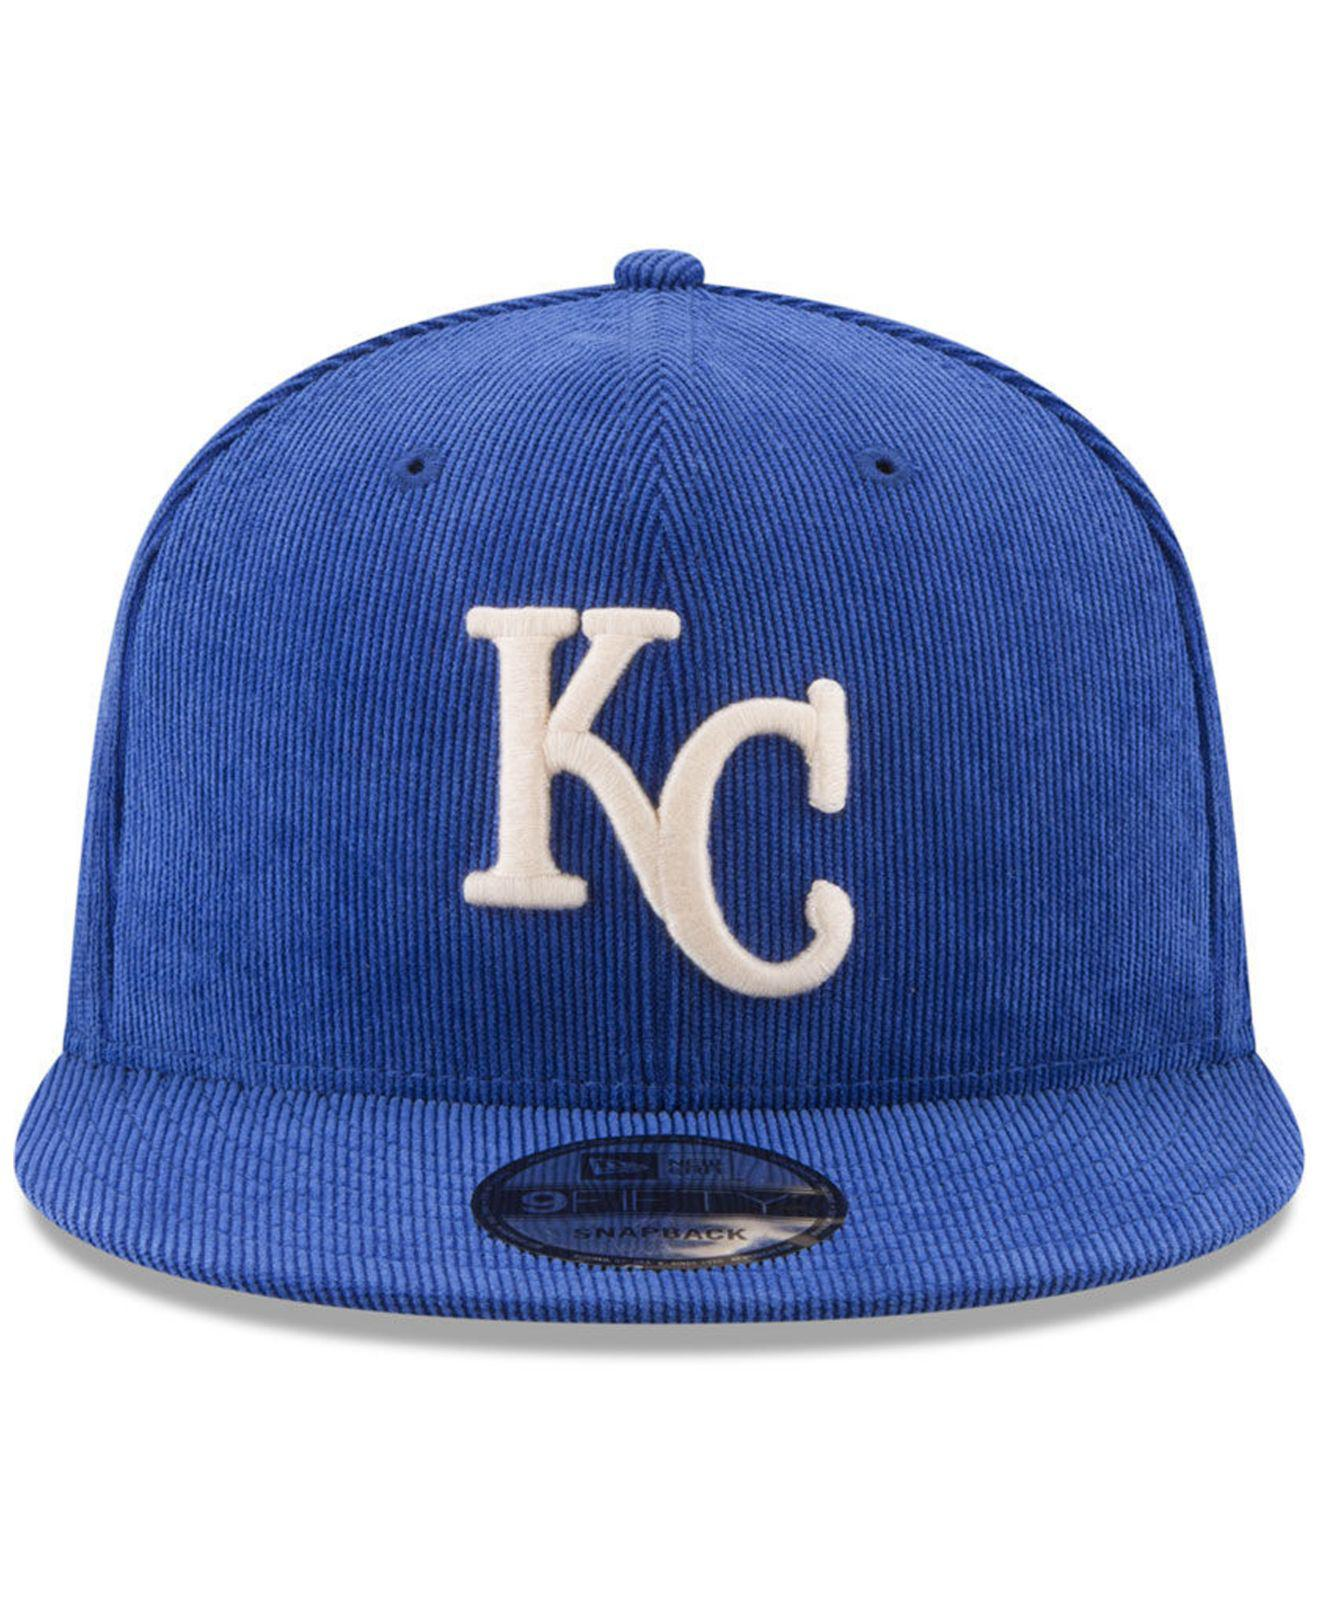 online store 09e5c e5ce4 Lyst - KTZ All Cooperstown Corduroy 9fifty Snapback Cap in Blue for Men